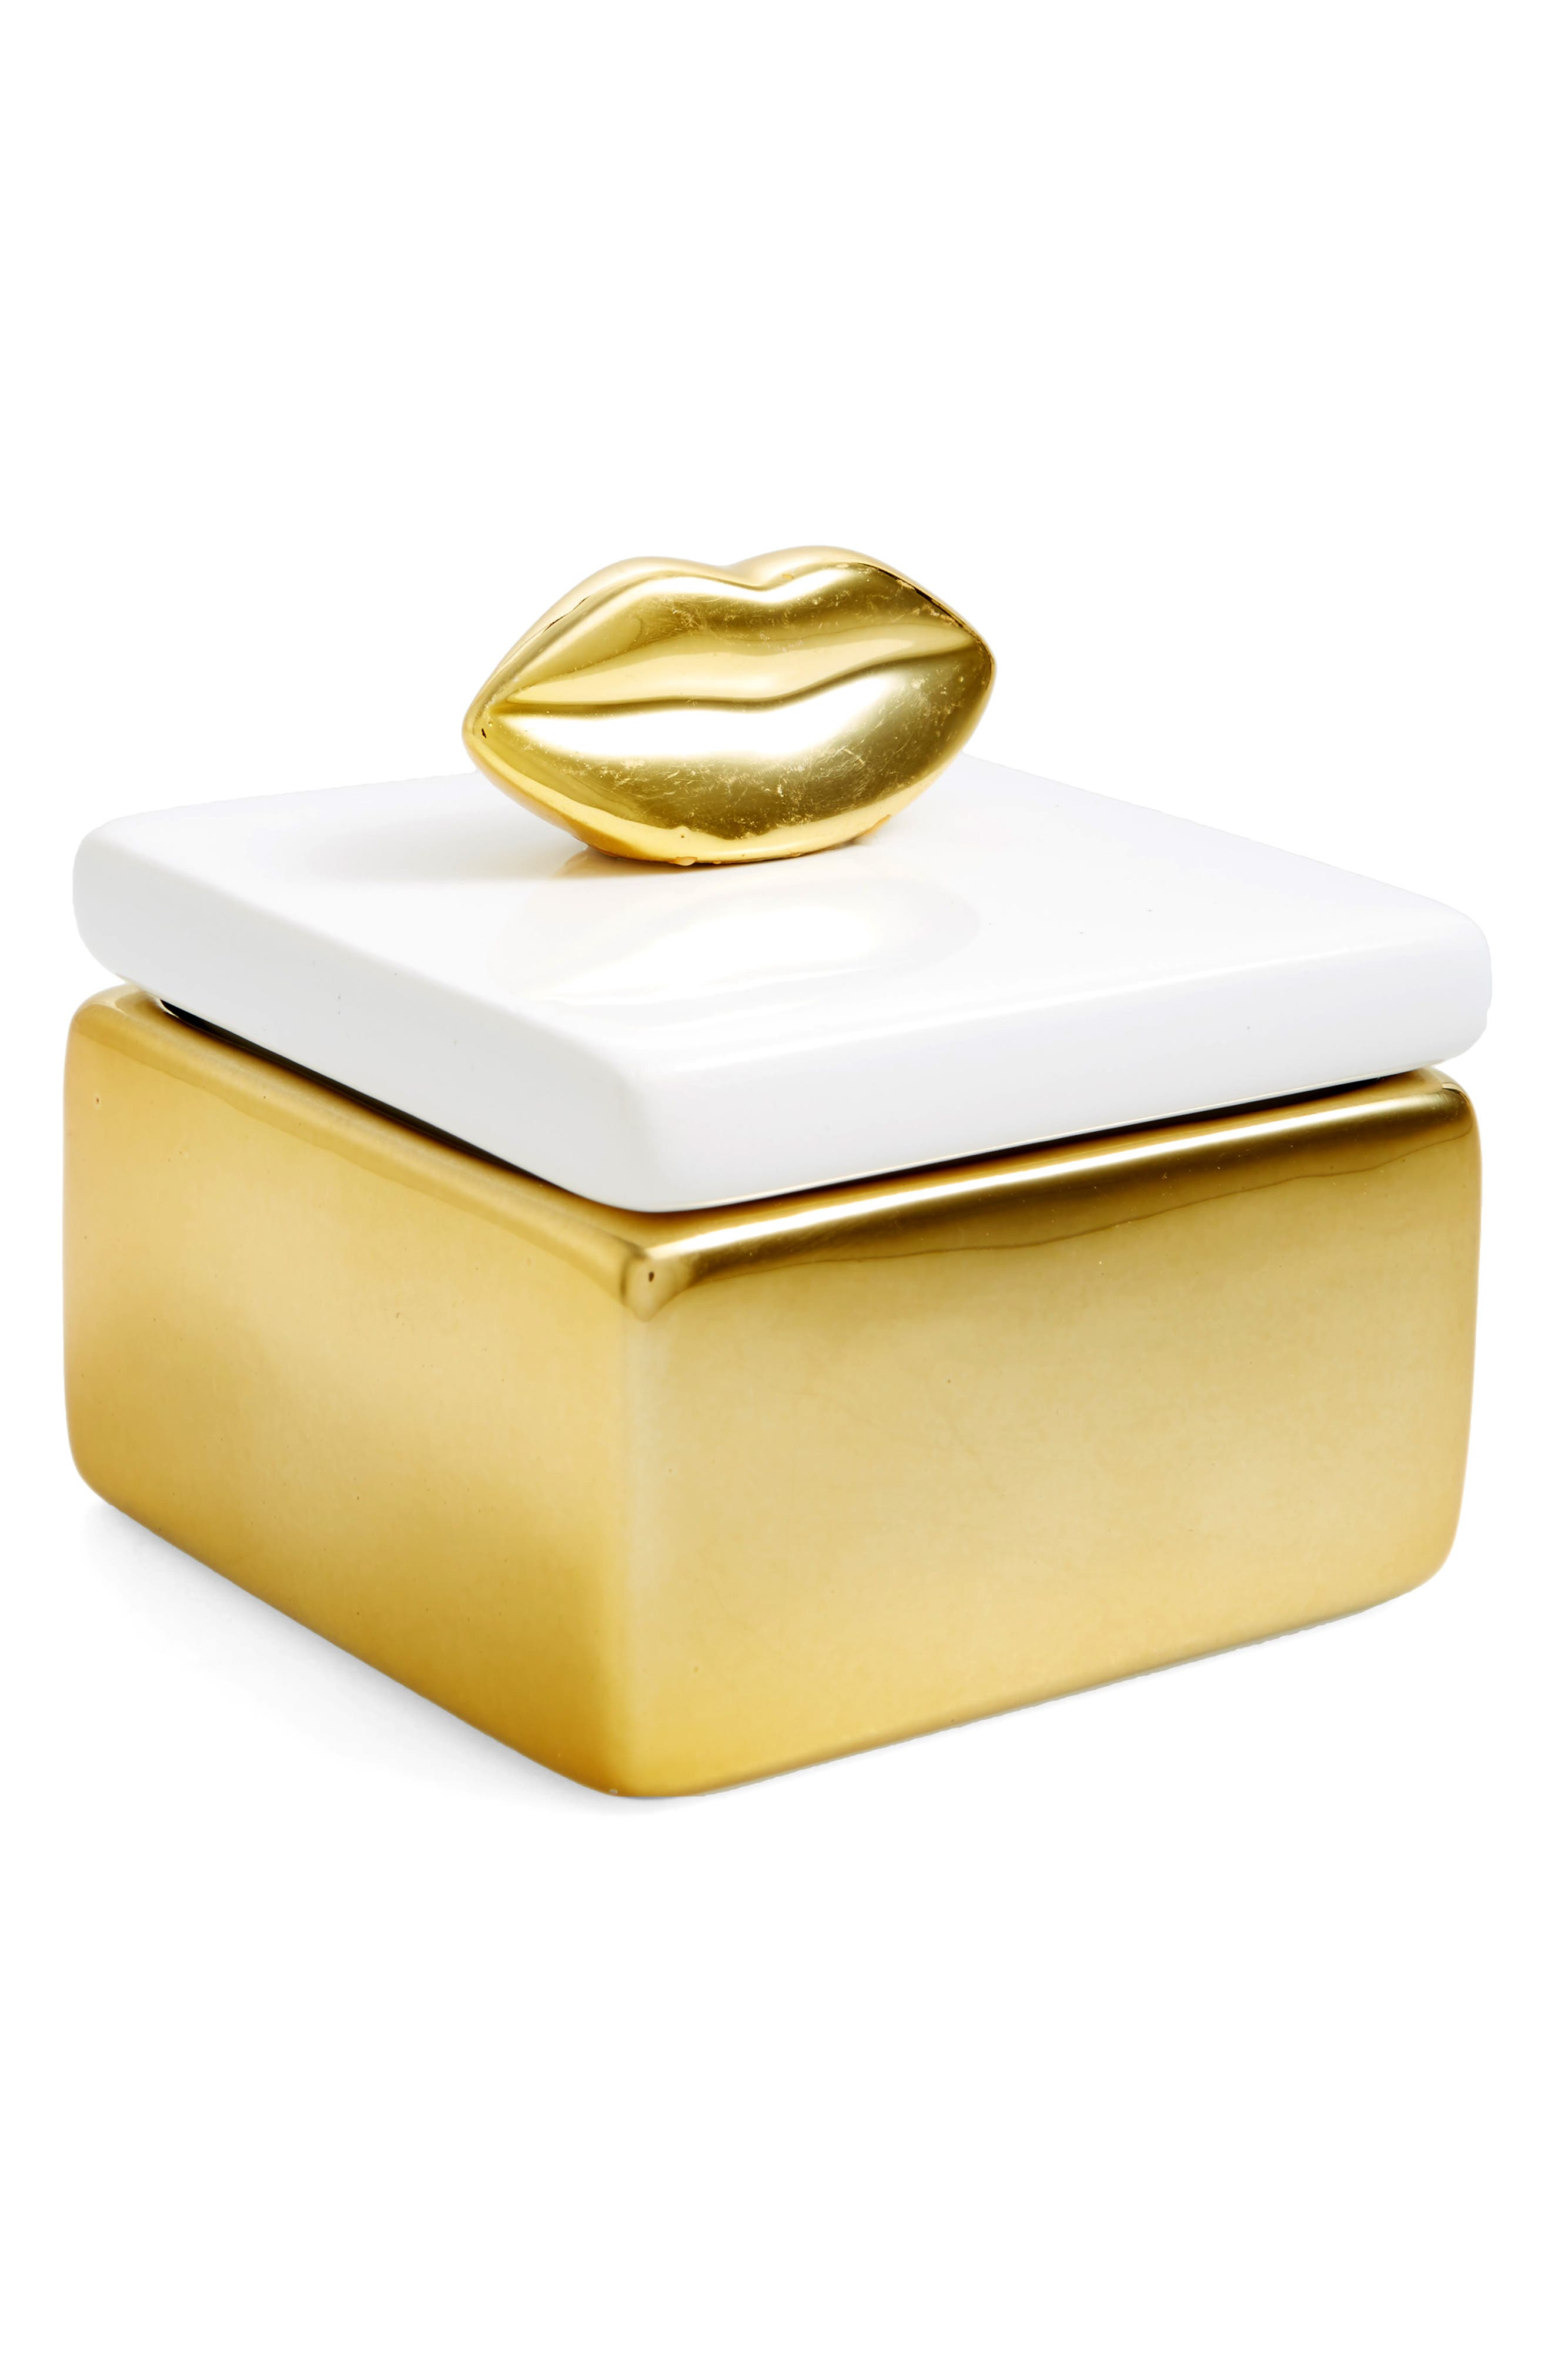 Lips Trinket Box,                             Main thumbnail 1, color,                             710